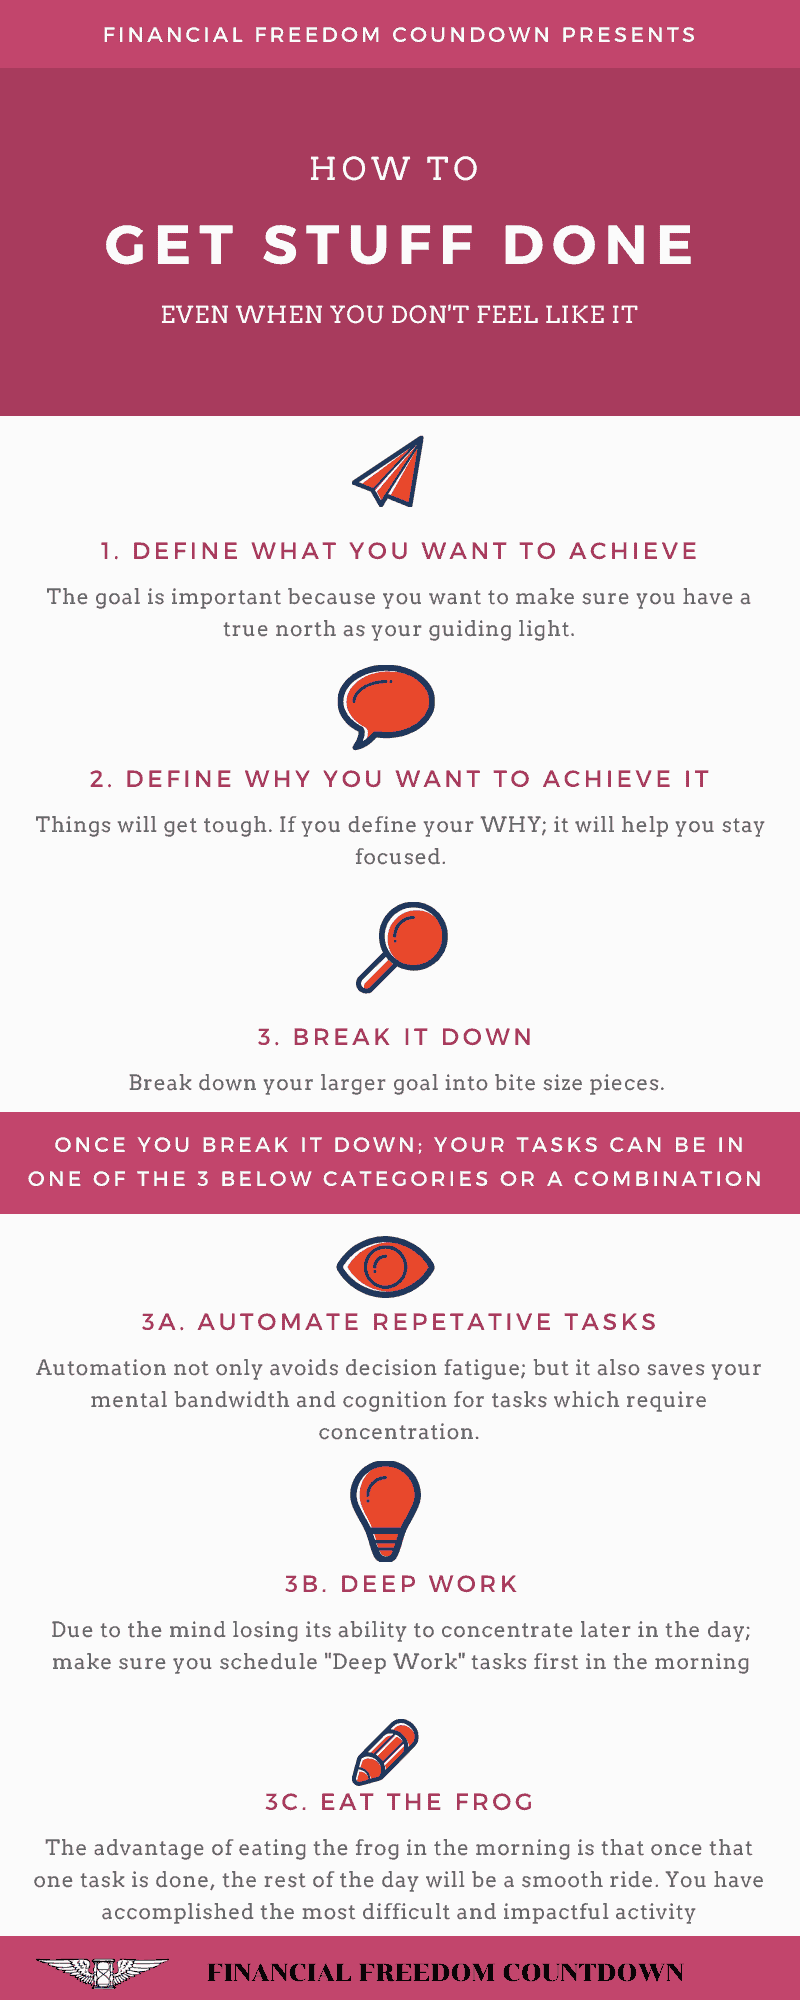 How To Get Stuff Done Even When You Don't Feel Like It